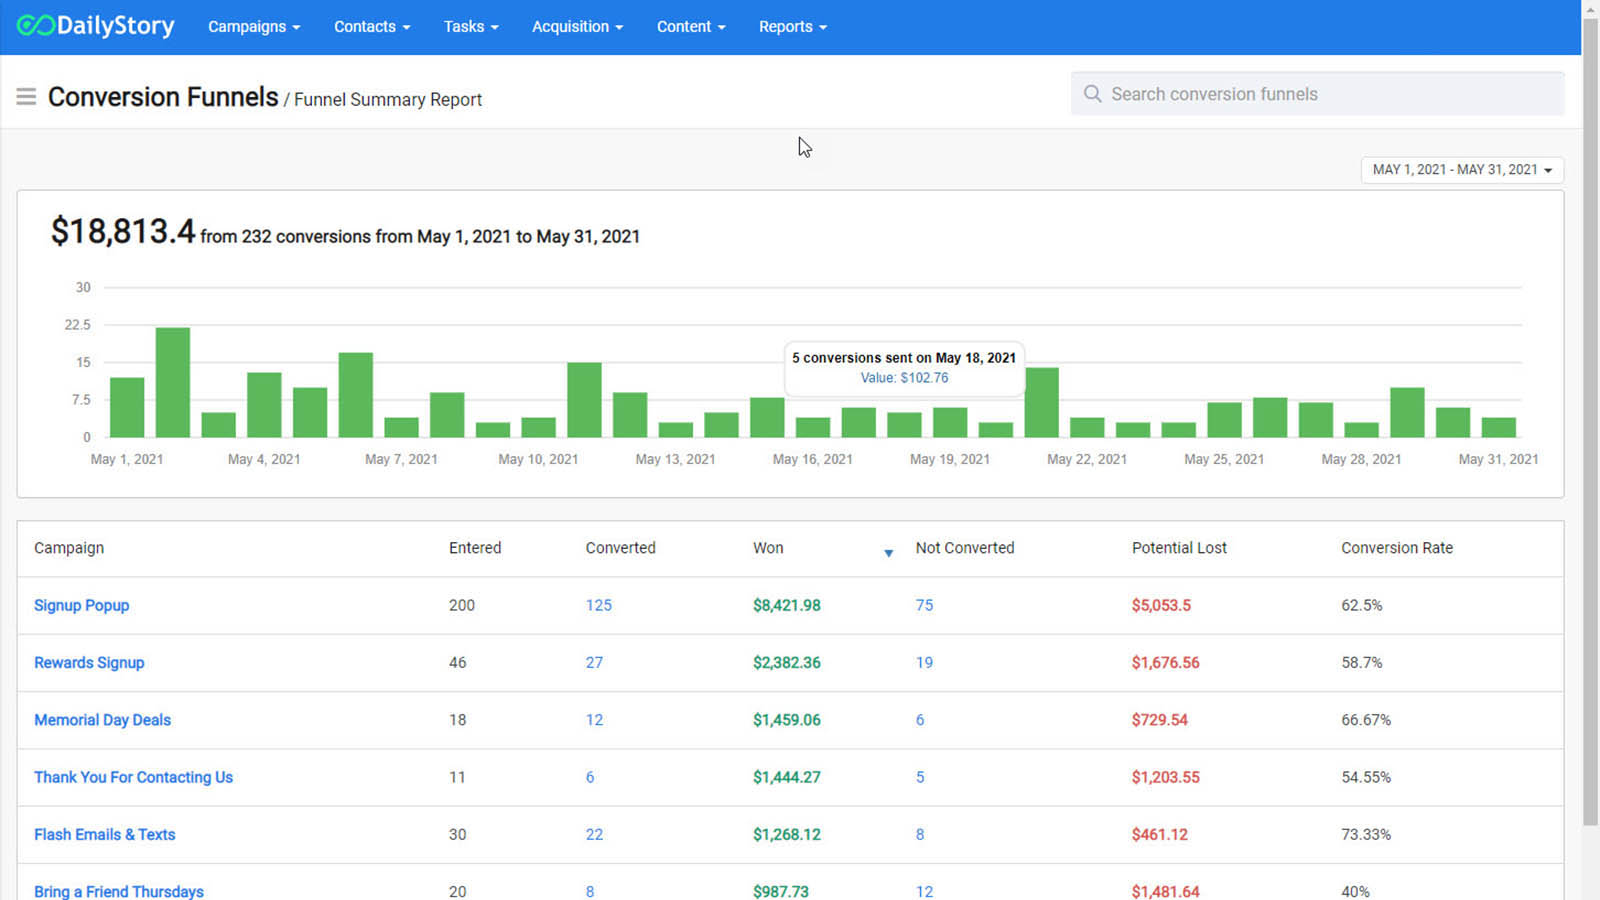 Track conversions across campaigns